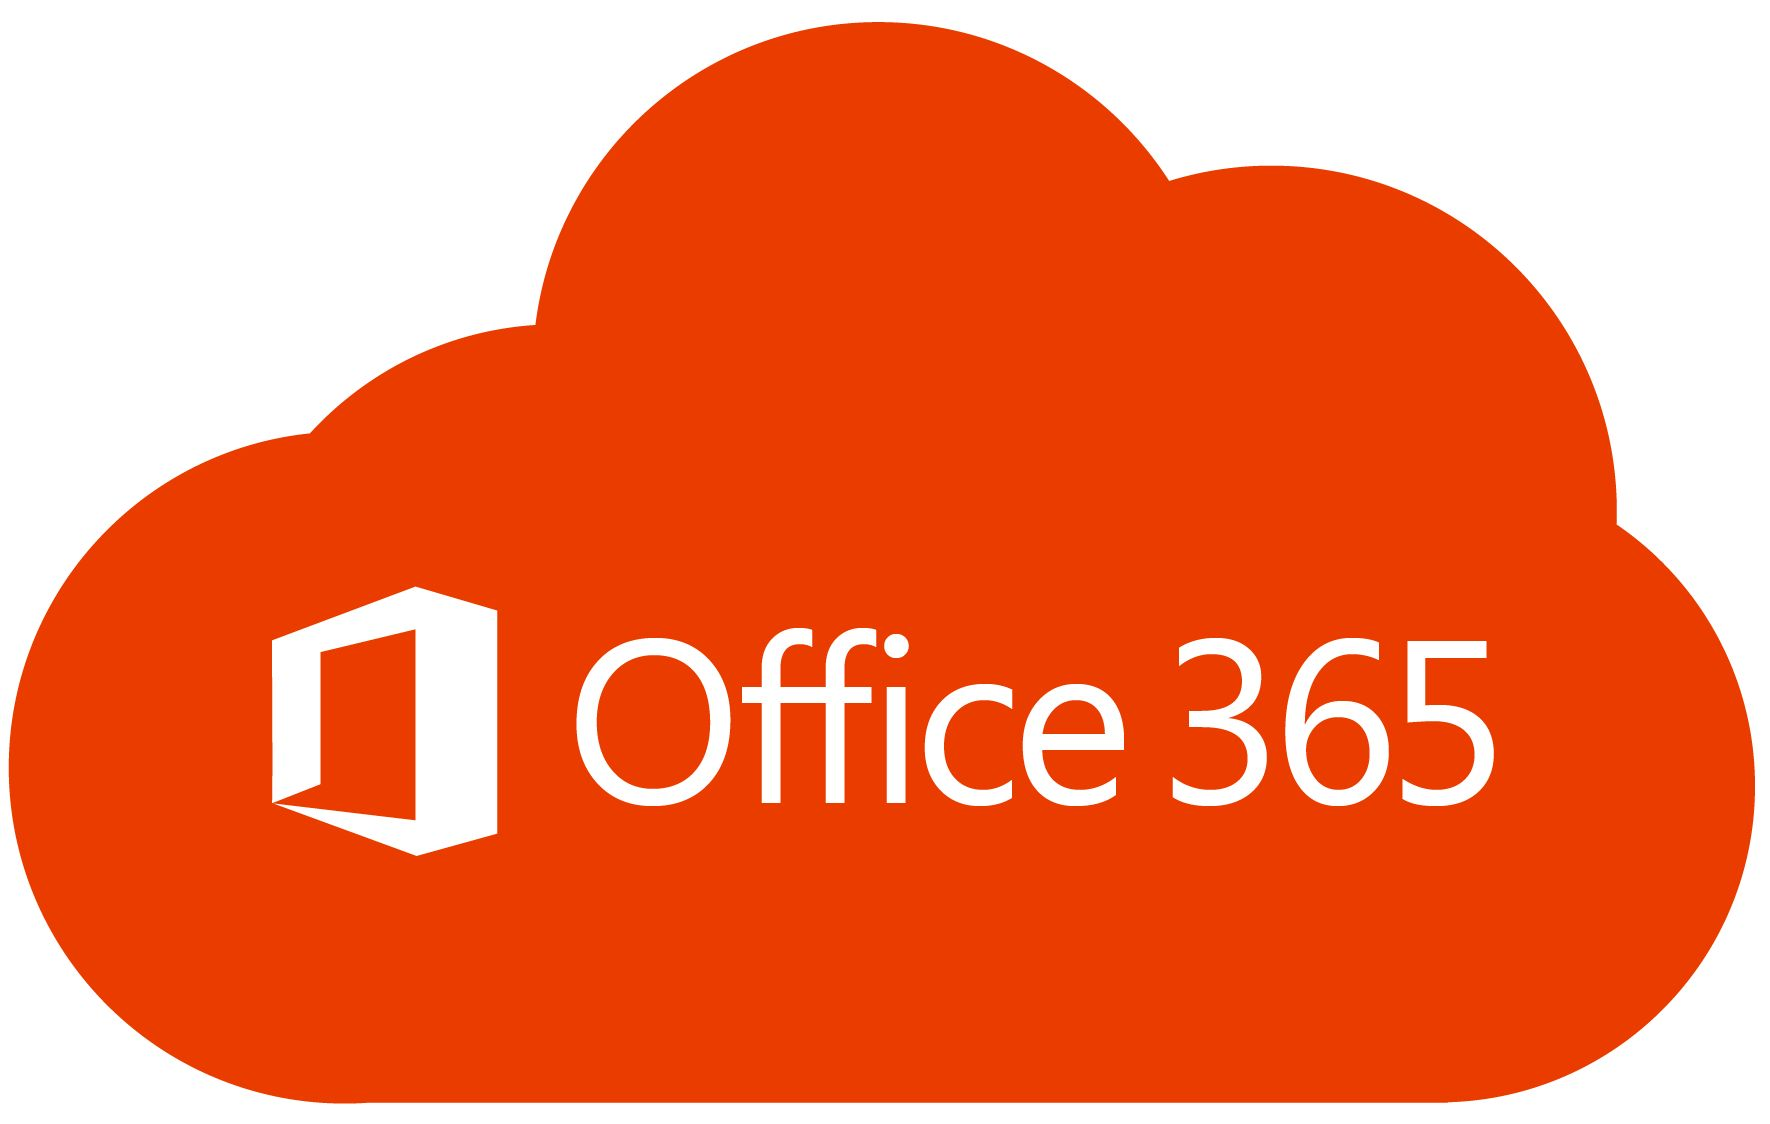 Office 365 gives you all productivity app of Microsoft which includes Word, Excel, Powerpoint, Outlook, and Onedrive.